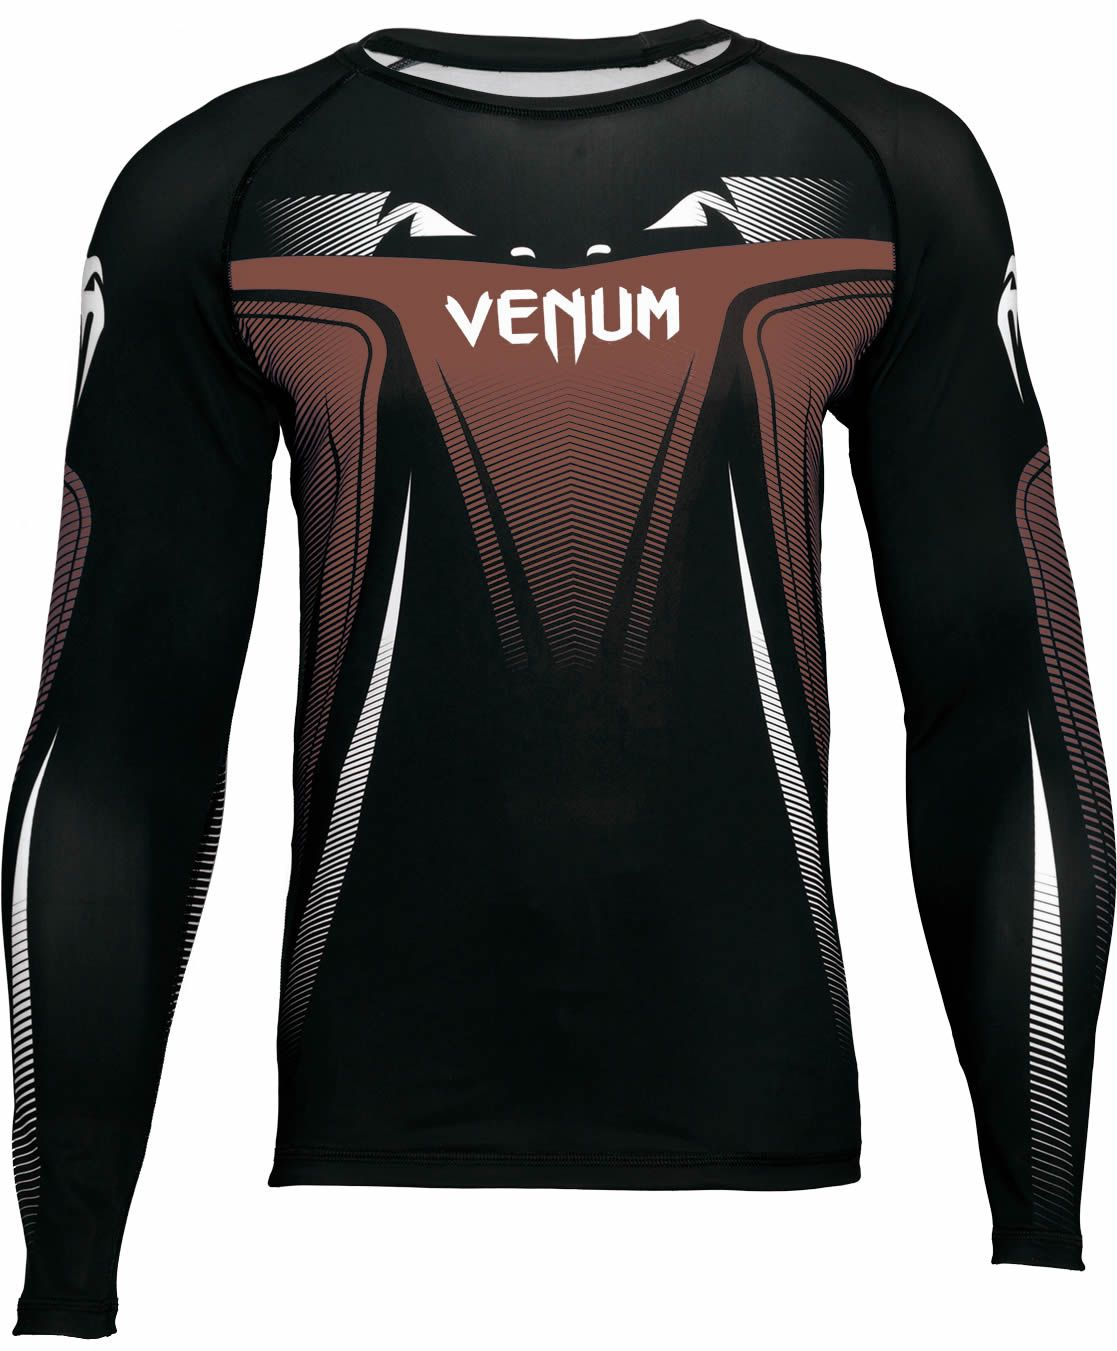 Camisa Rash Guard Lycra No Gi IBJJF Approved - Manga Longa - Marrom -  Venum